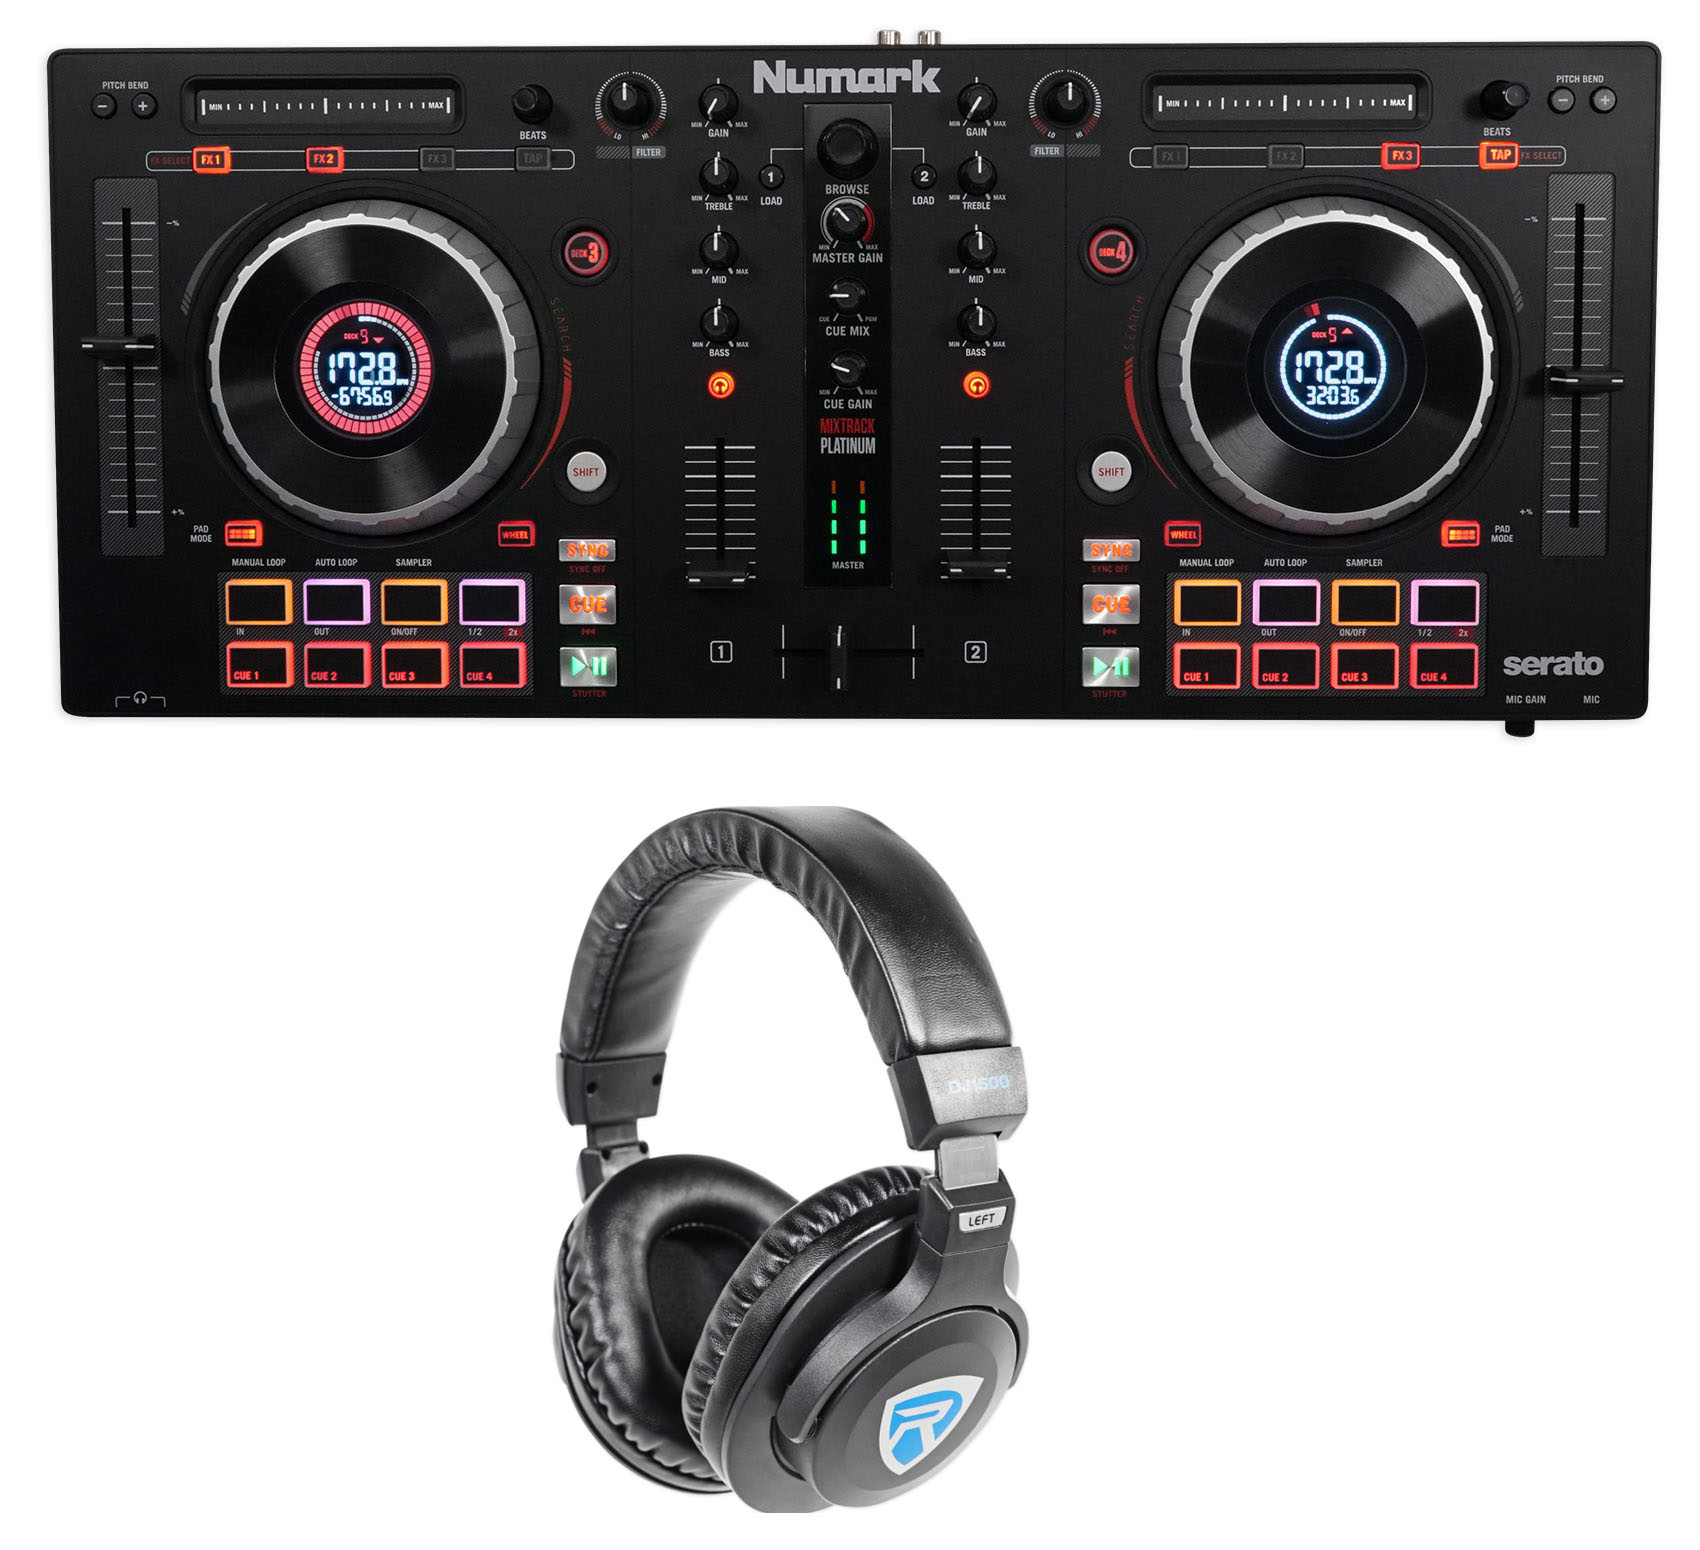 Numark Mixtrack Platinum 4-Ch Serato DJ Controller+Jog Wheel Display+Headphones